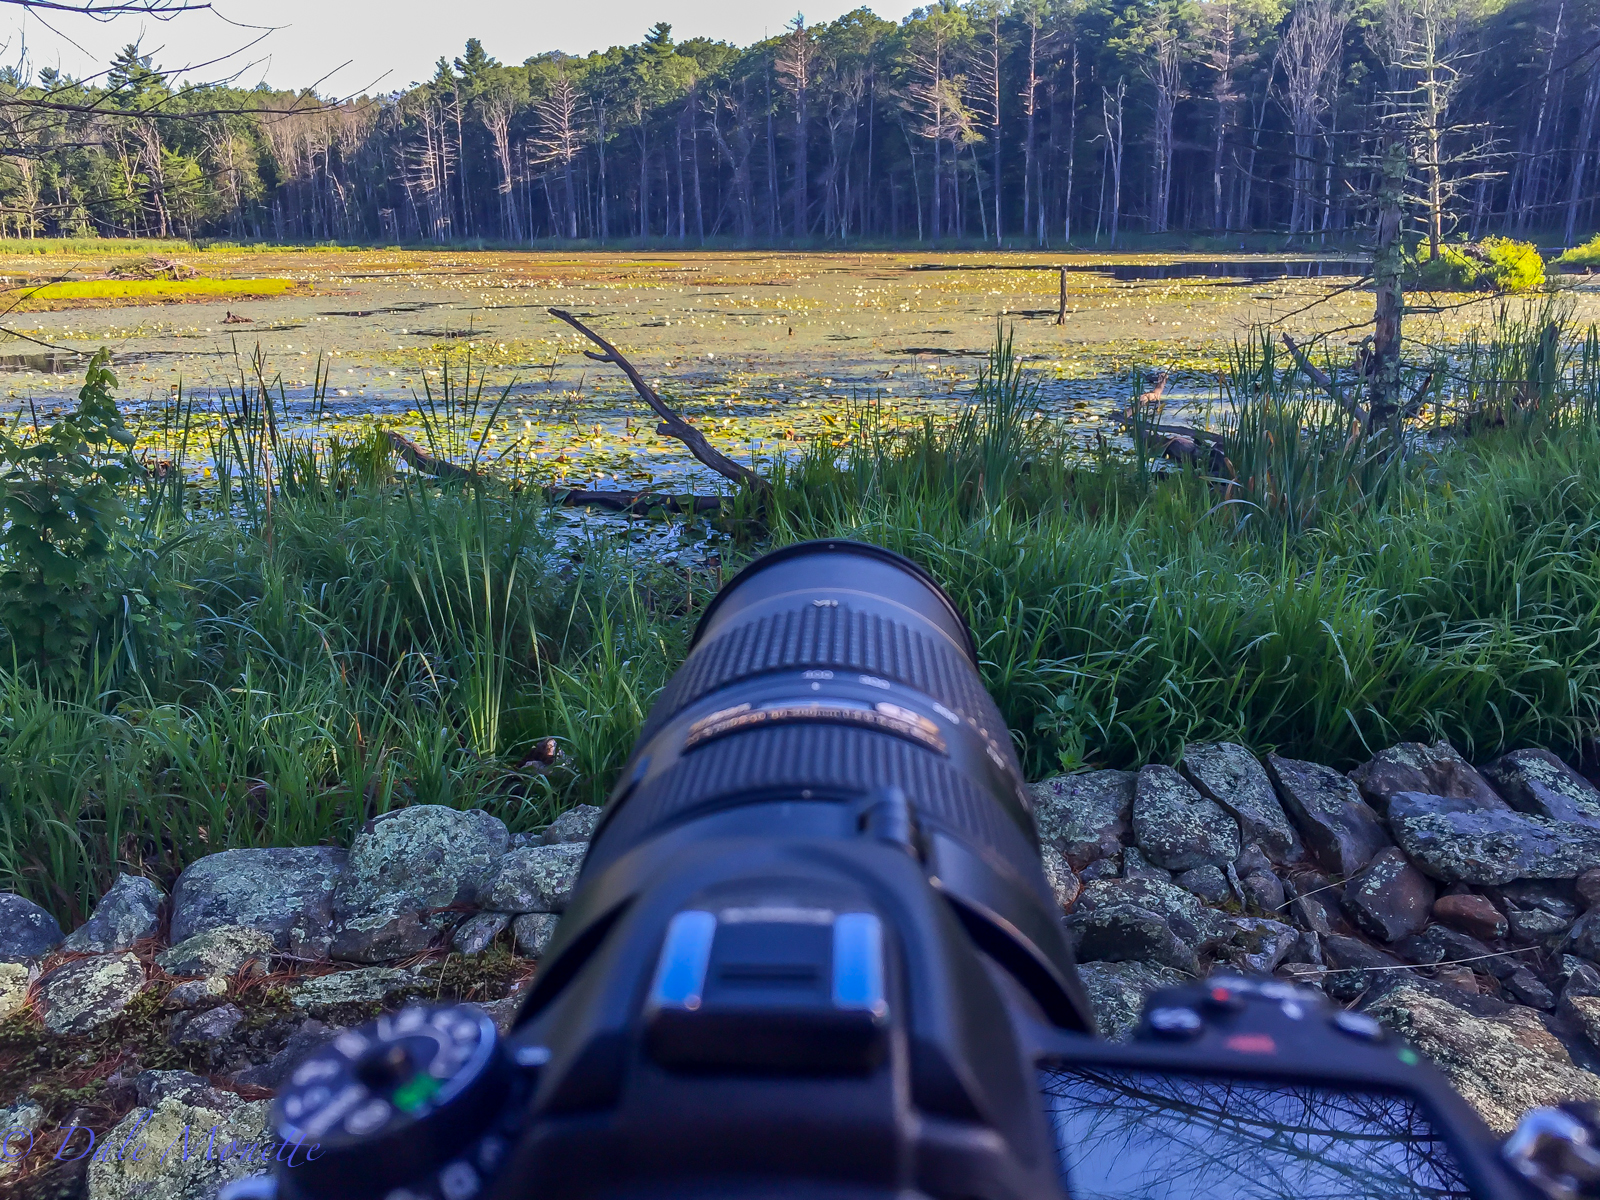 One of the many swamps on the Quabbin watershed.  You don't realize how much life there is in one of these ponds until you sit for a couple hours and just watch the world go by.  8/20/15